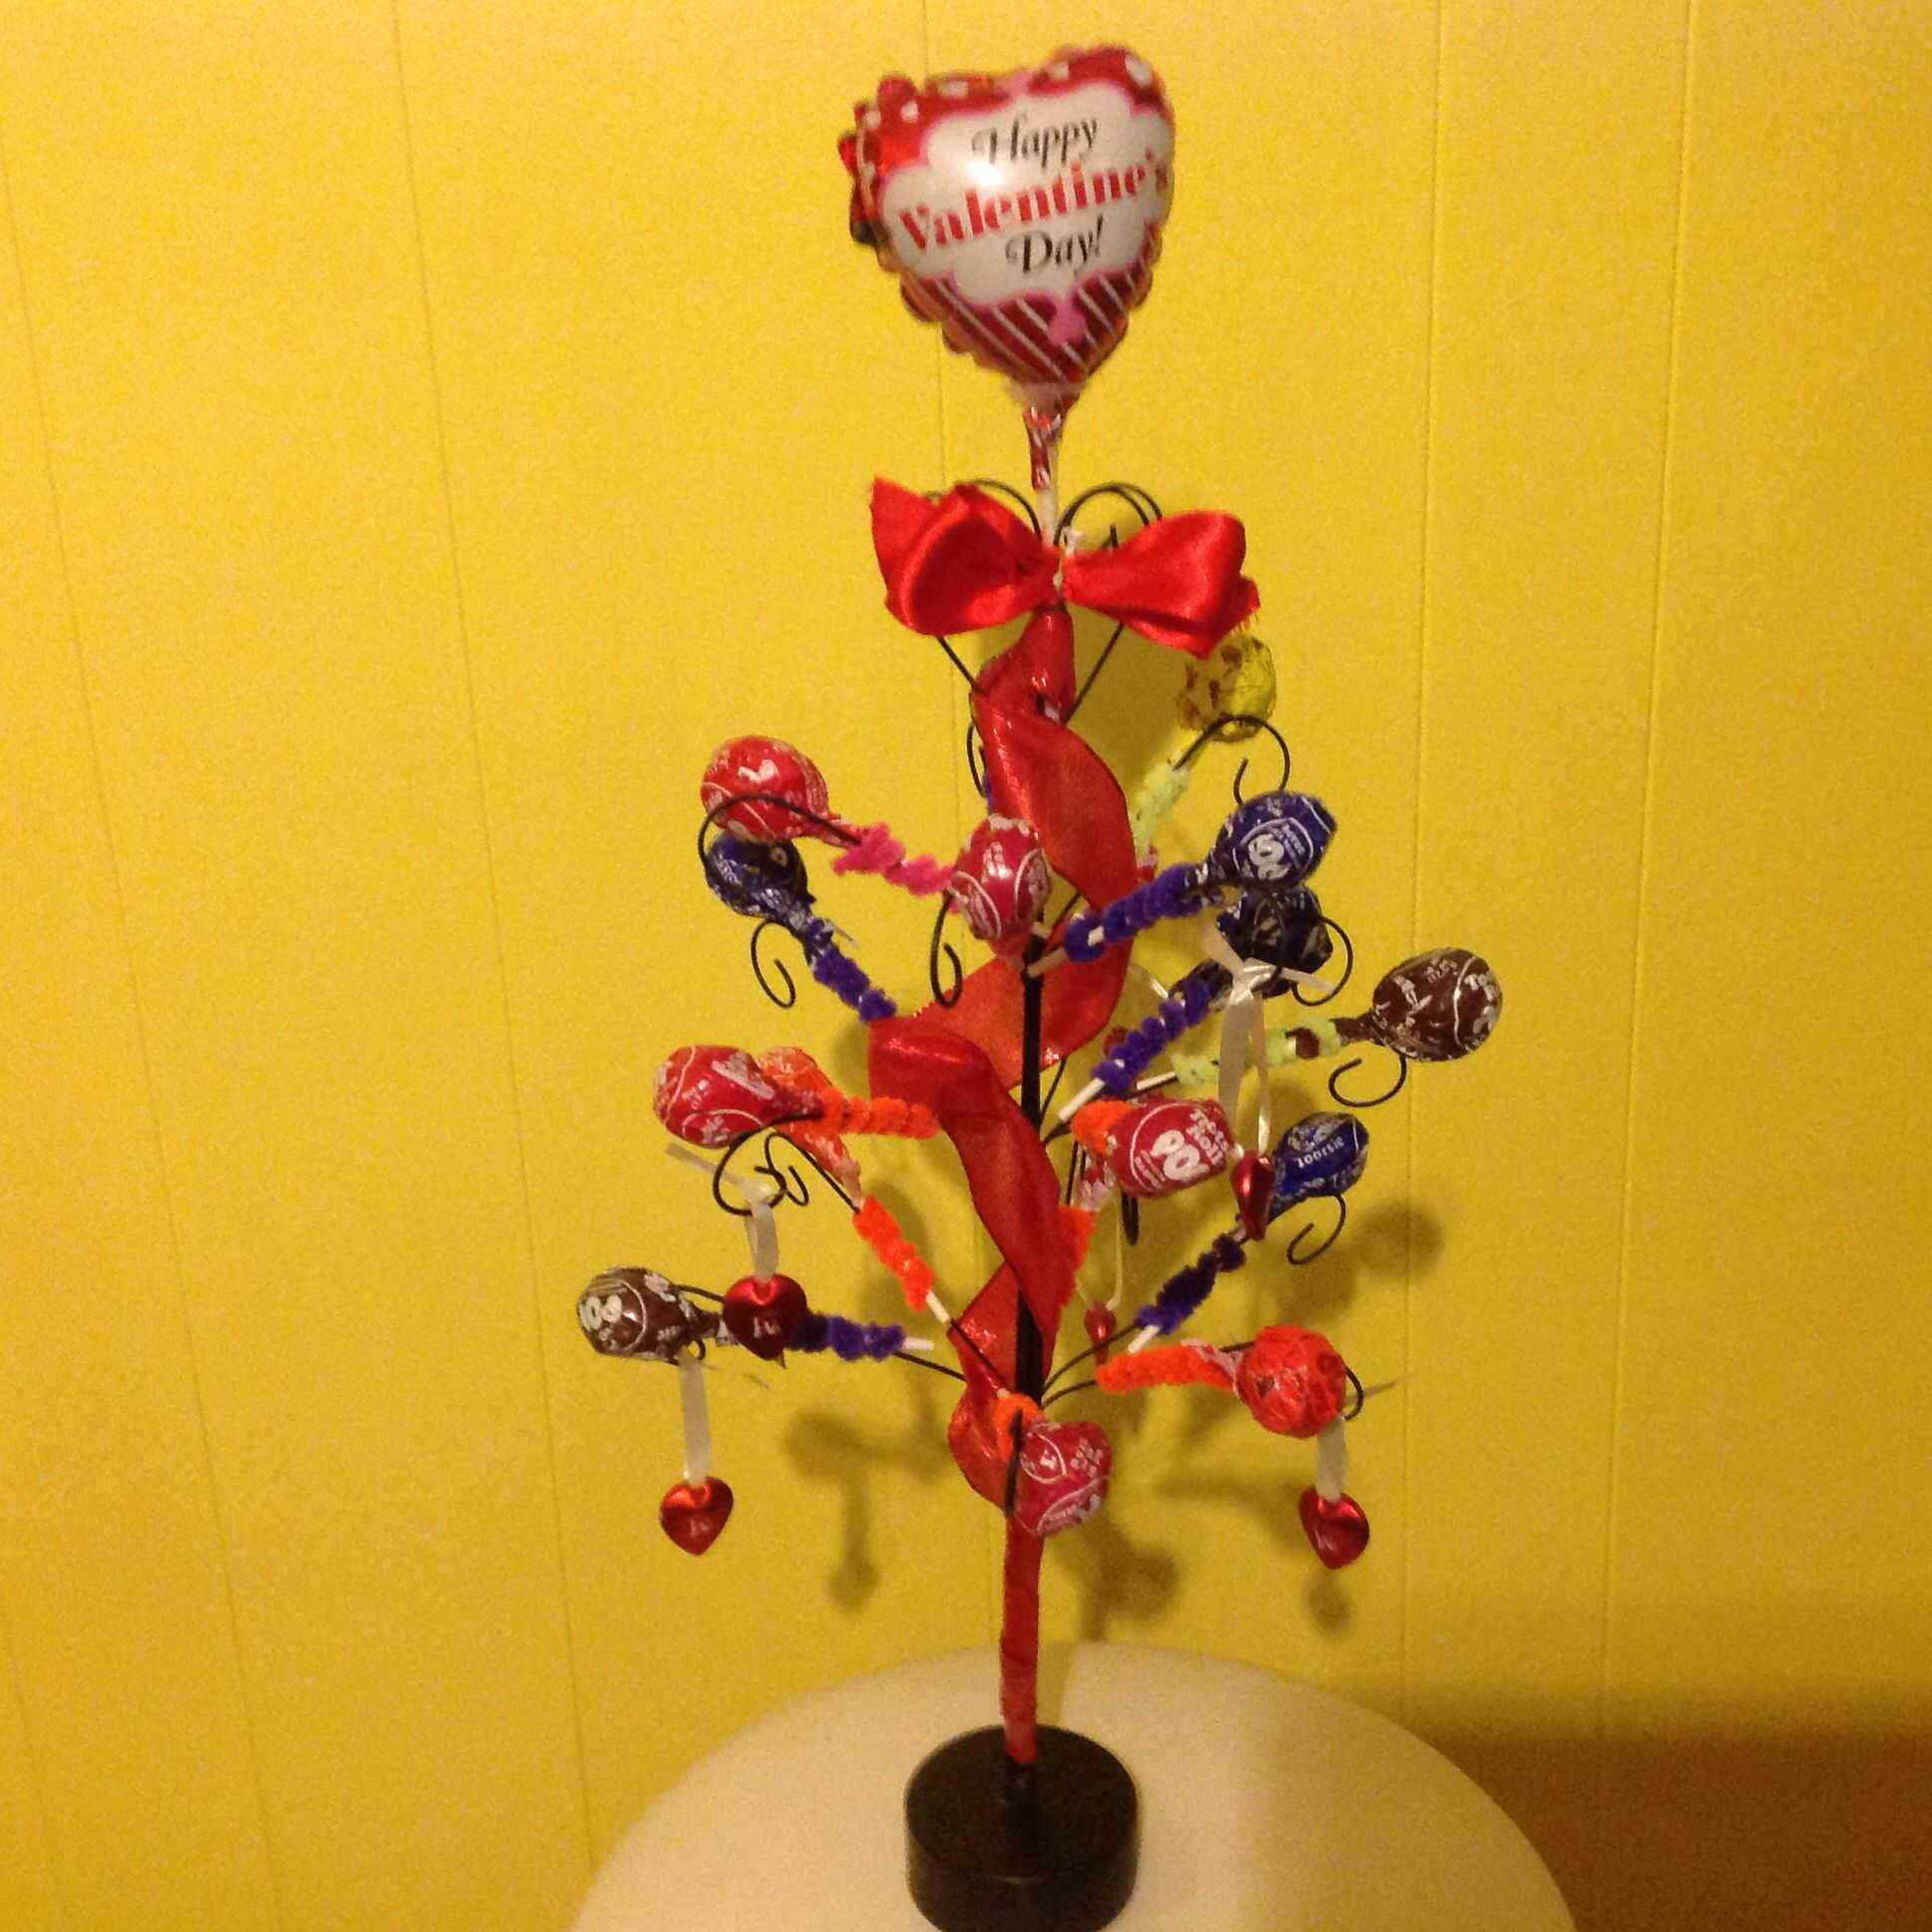 Tootsie Roll Pop tree. Great for a work desk to share candy with others for Valentine.